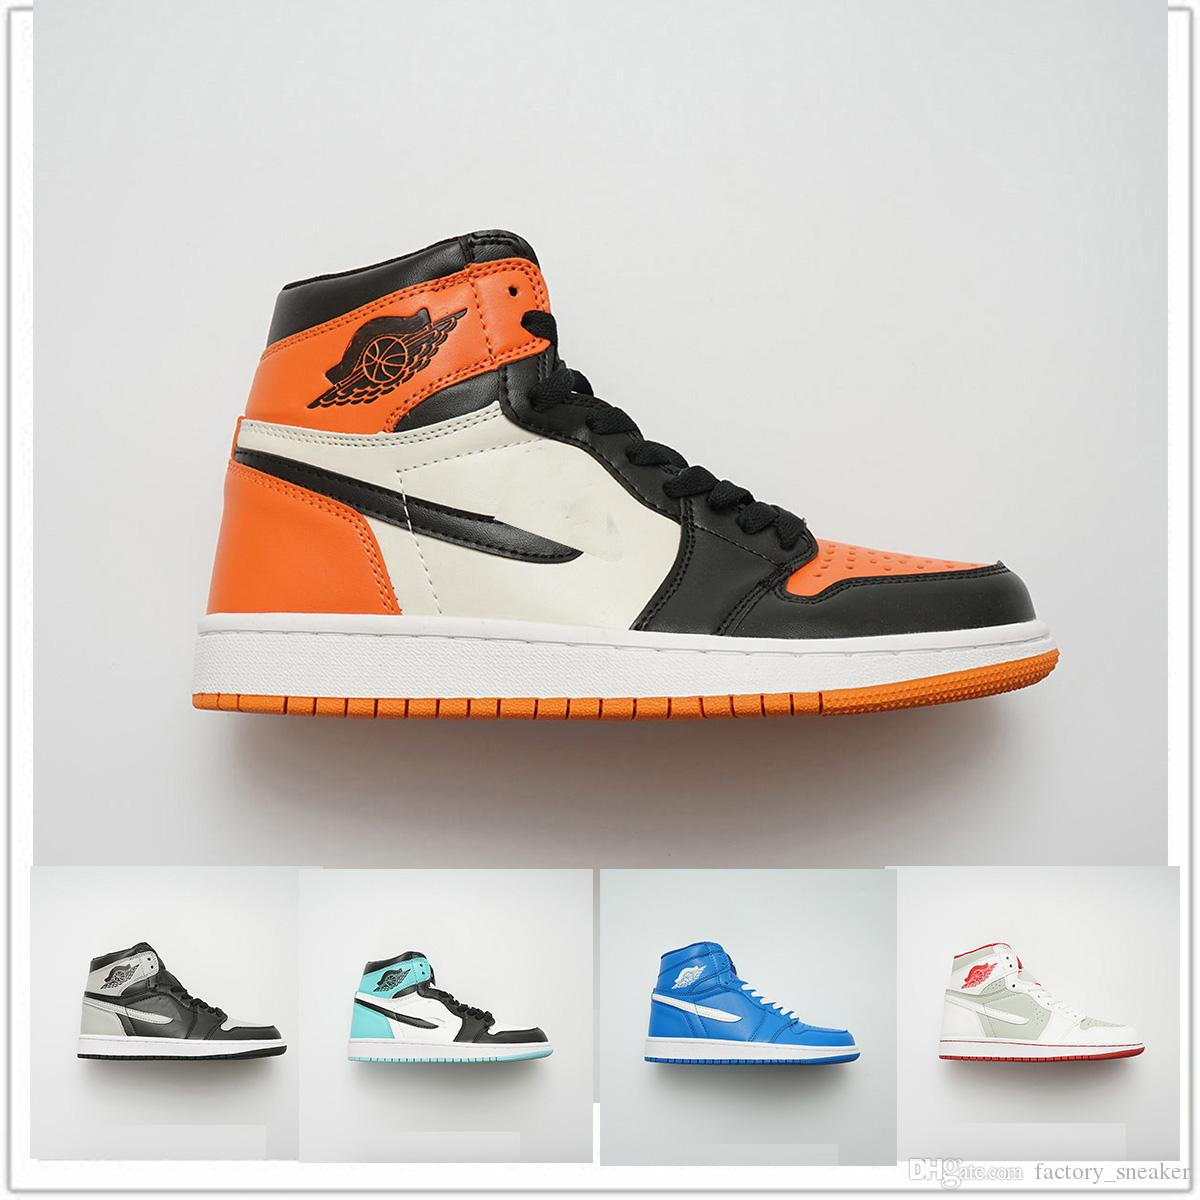 7274b6fdd1f 2018-new-top-3-aj-1-retro-og-high-mid-basketball.jpg